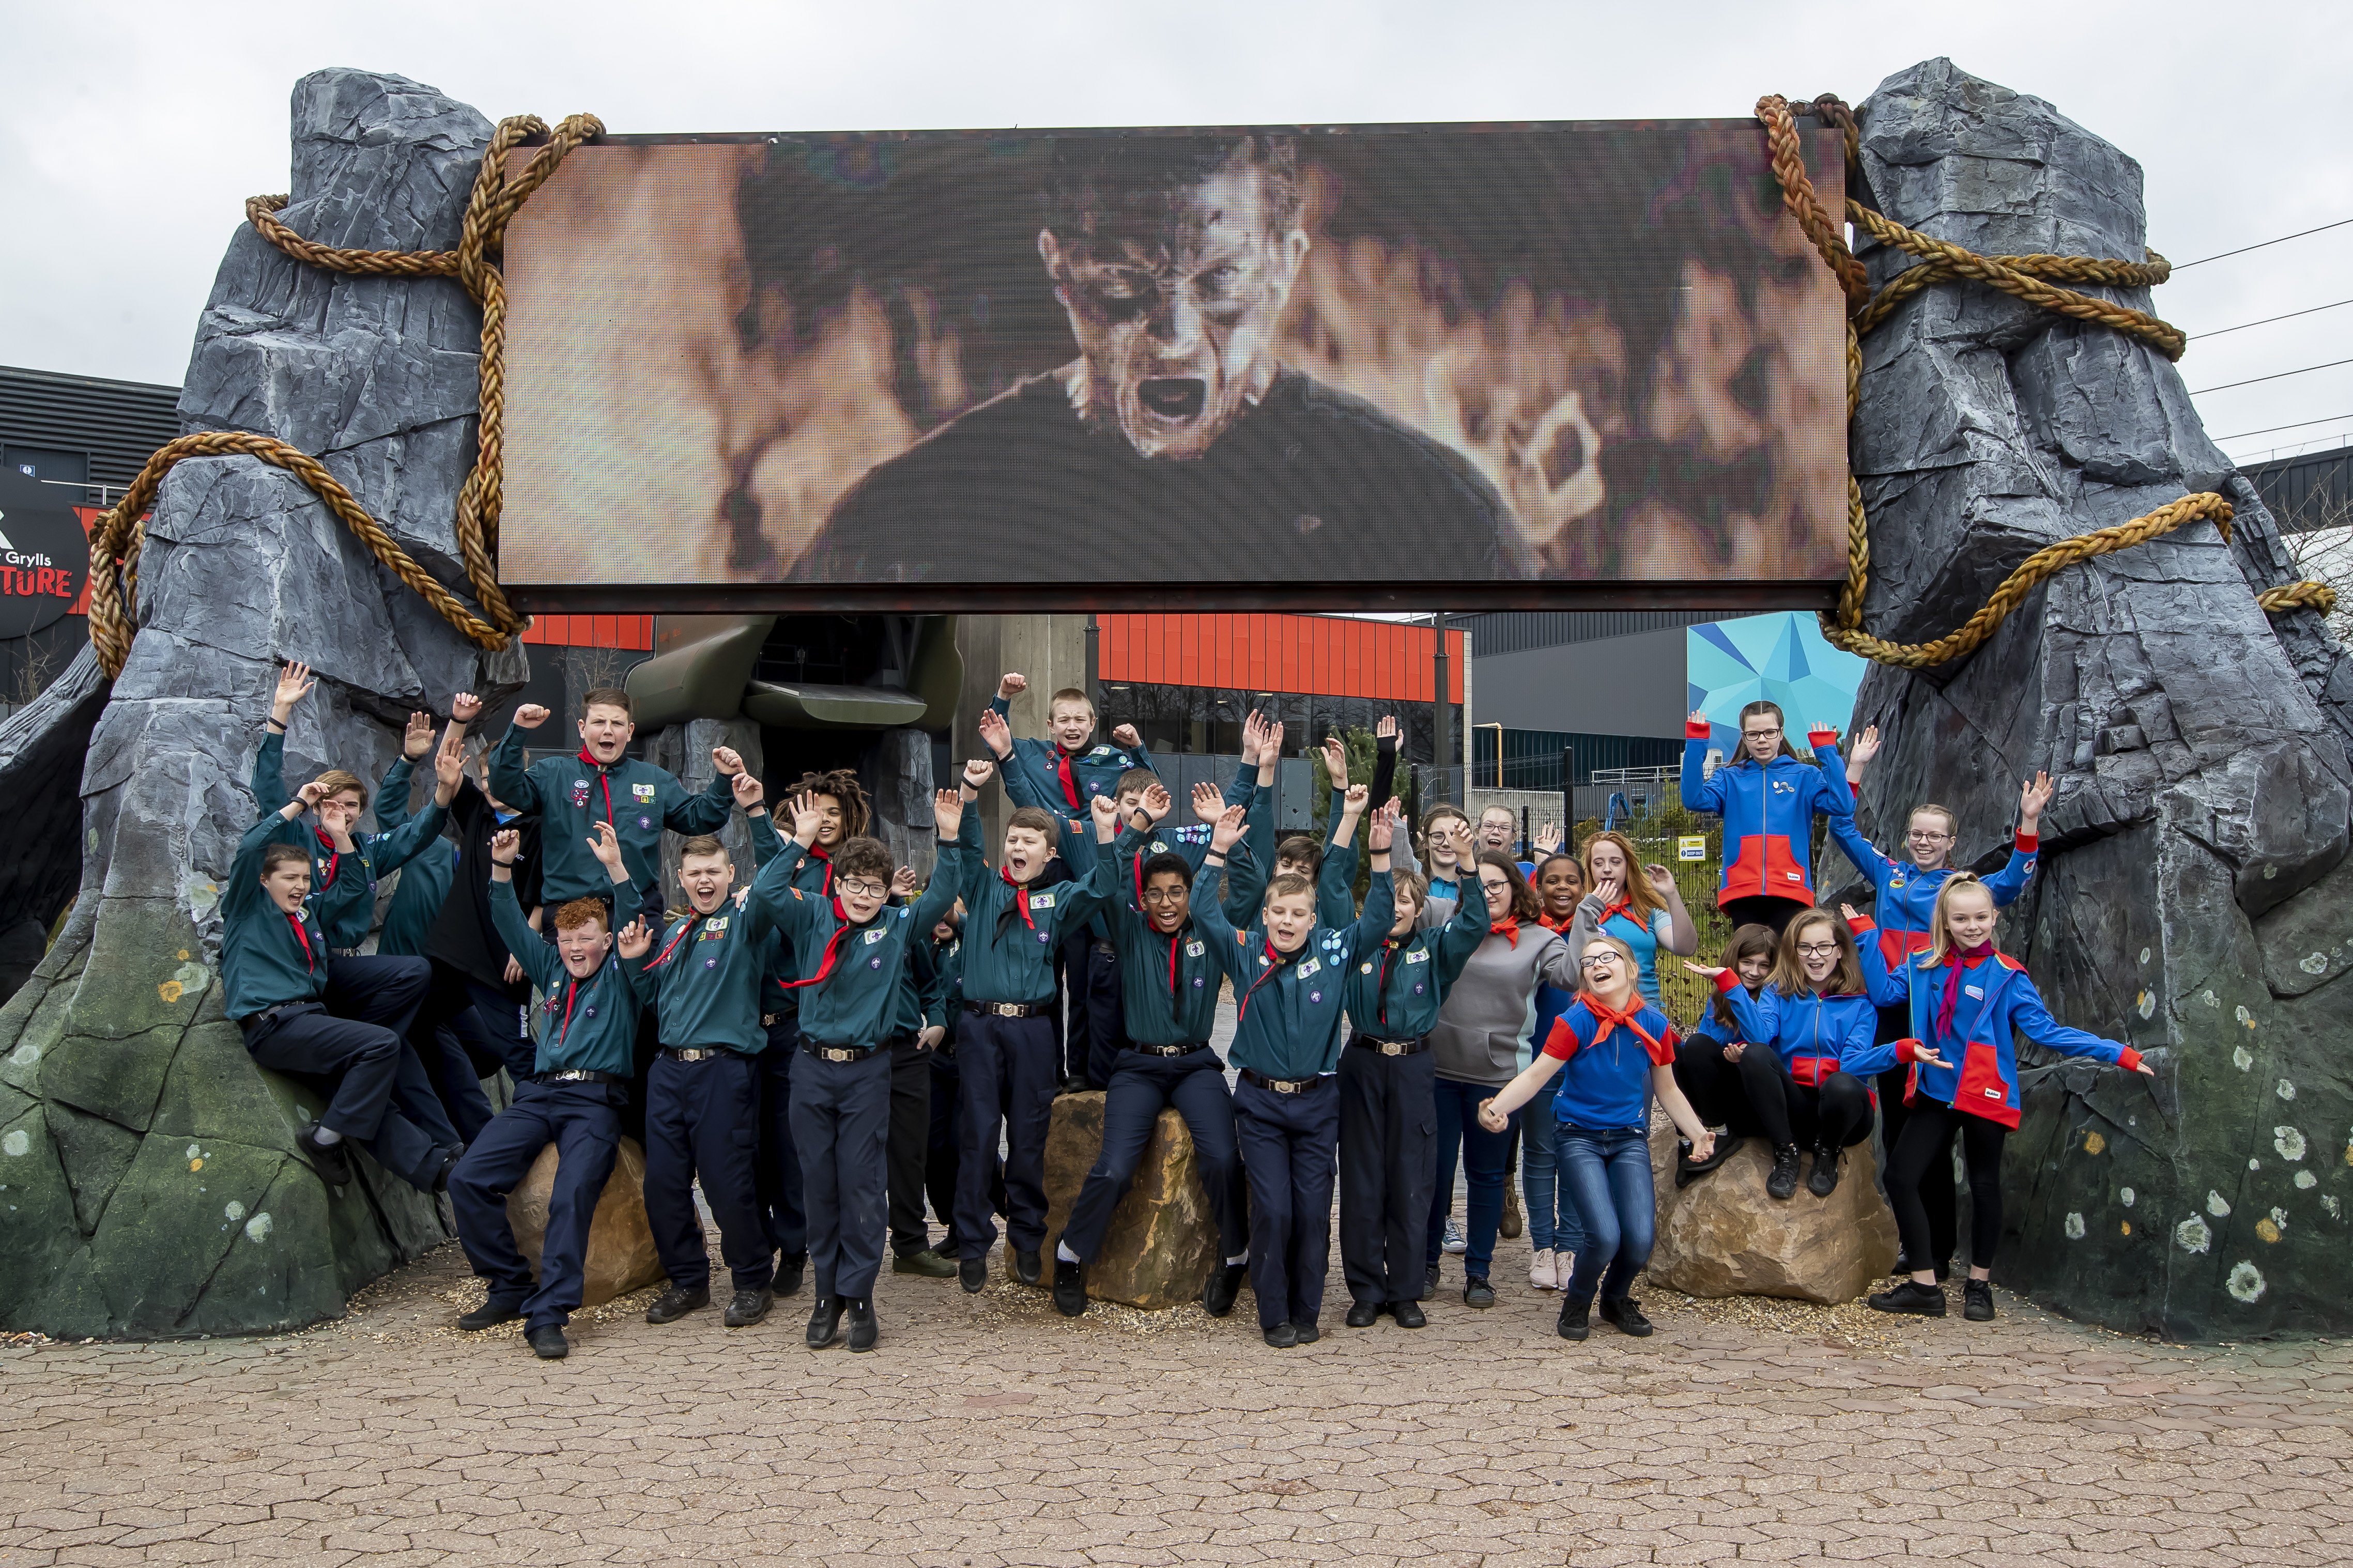 Group of scouts post by The Bear Grylls Adventure entrance